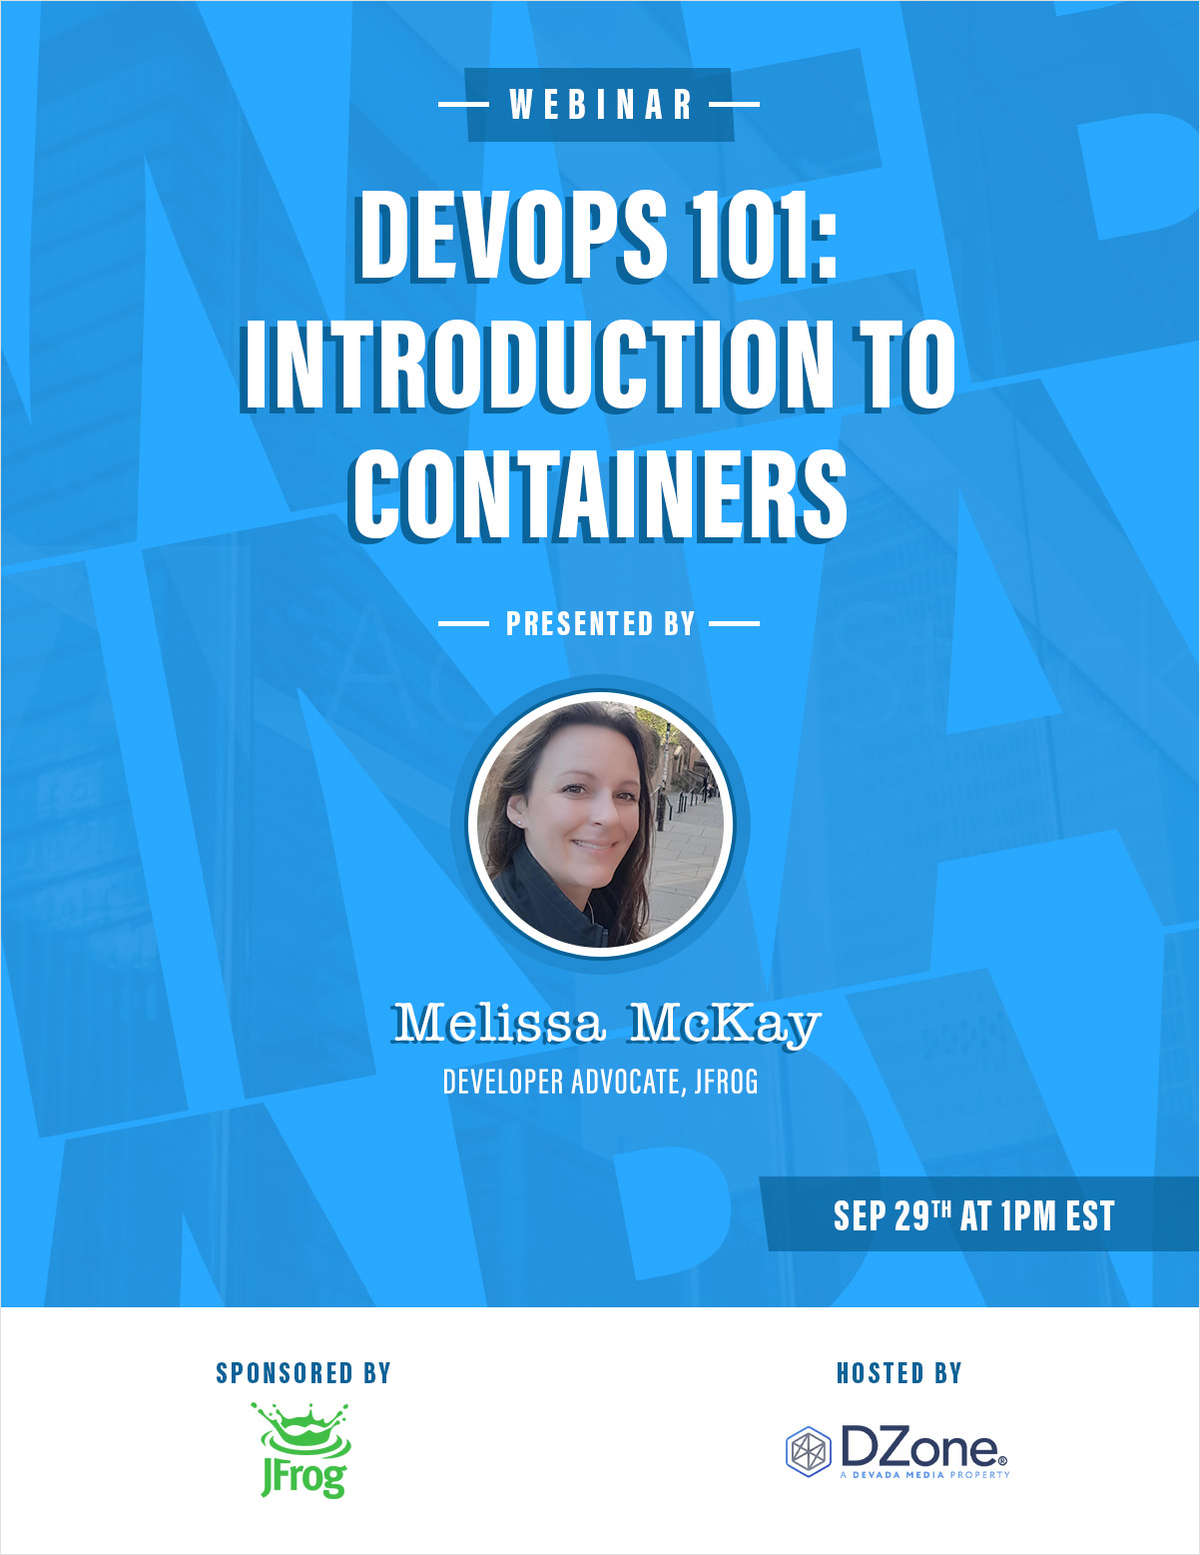 DevOps 101: Introduction to Containers